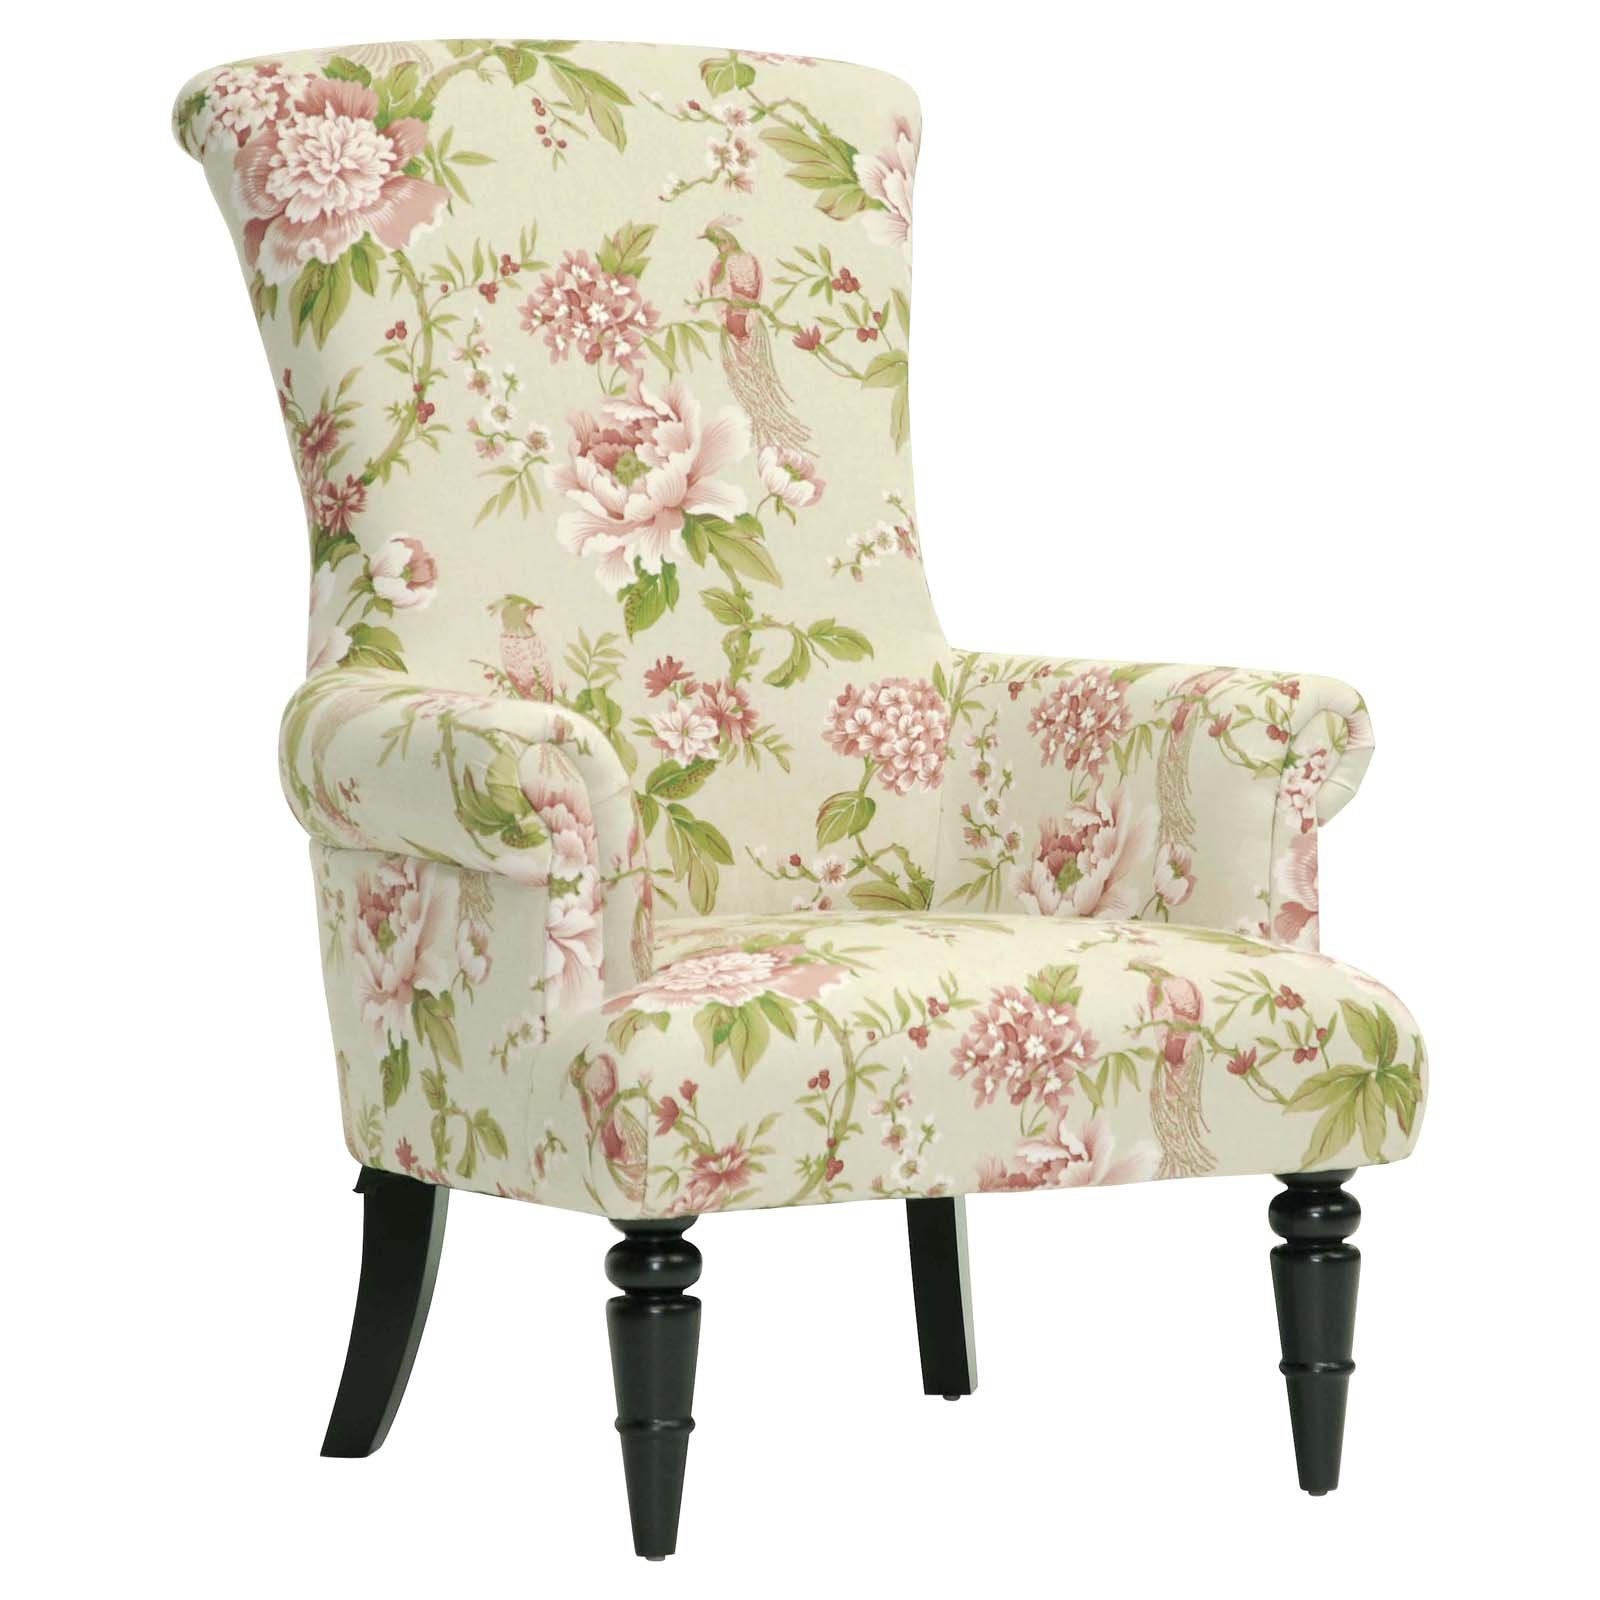 Have to have it Baxton Studio Kimmett Linen Floral Accent Chair